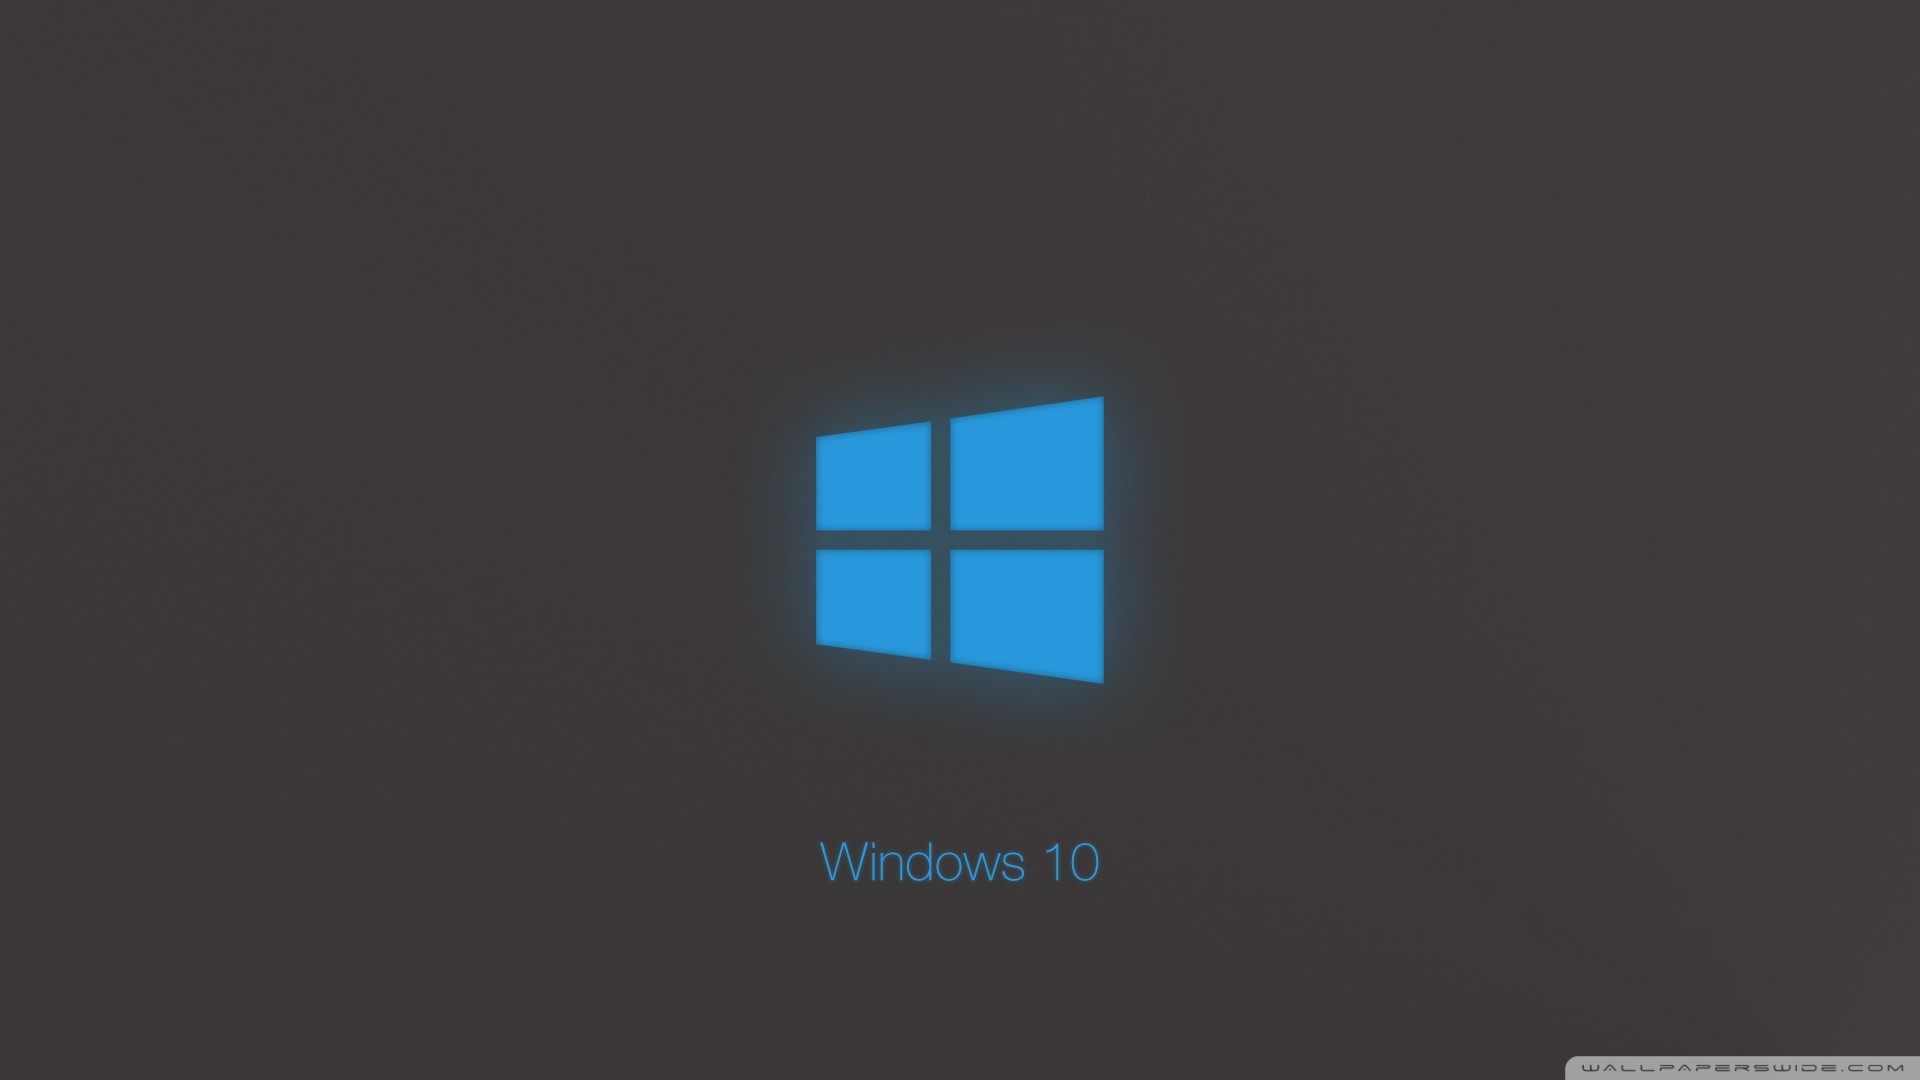 1920x1080 windows 10 1080p wallpapers #142610